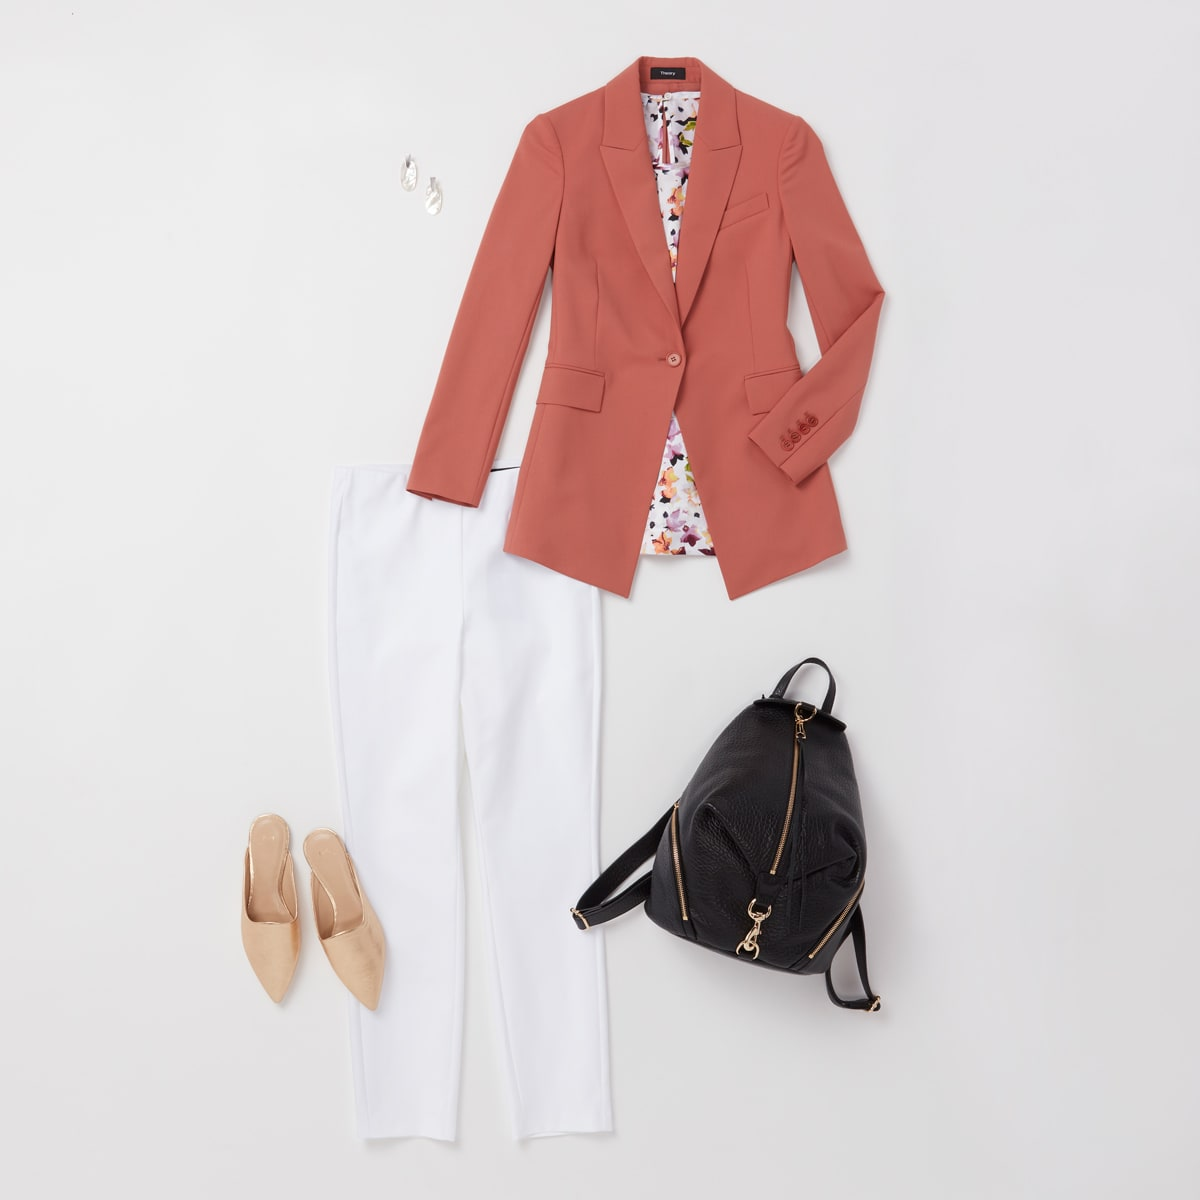 Statement making business casual outfit for women